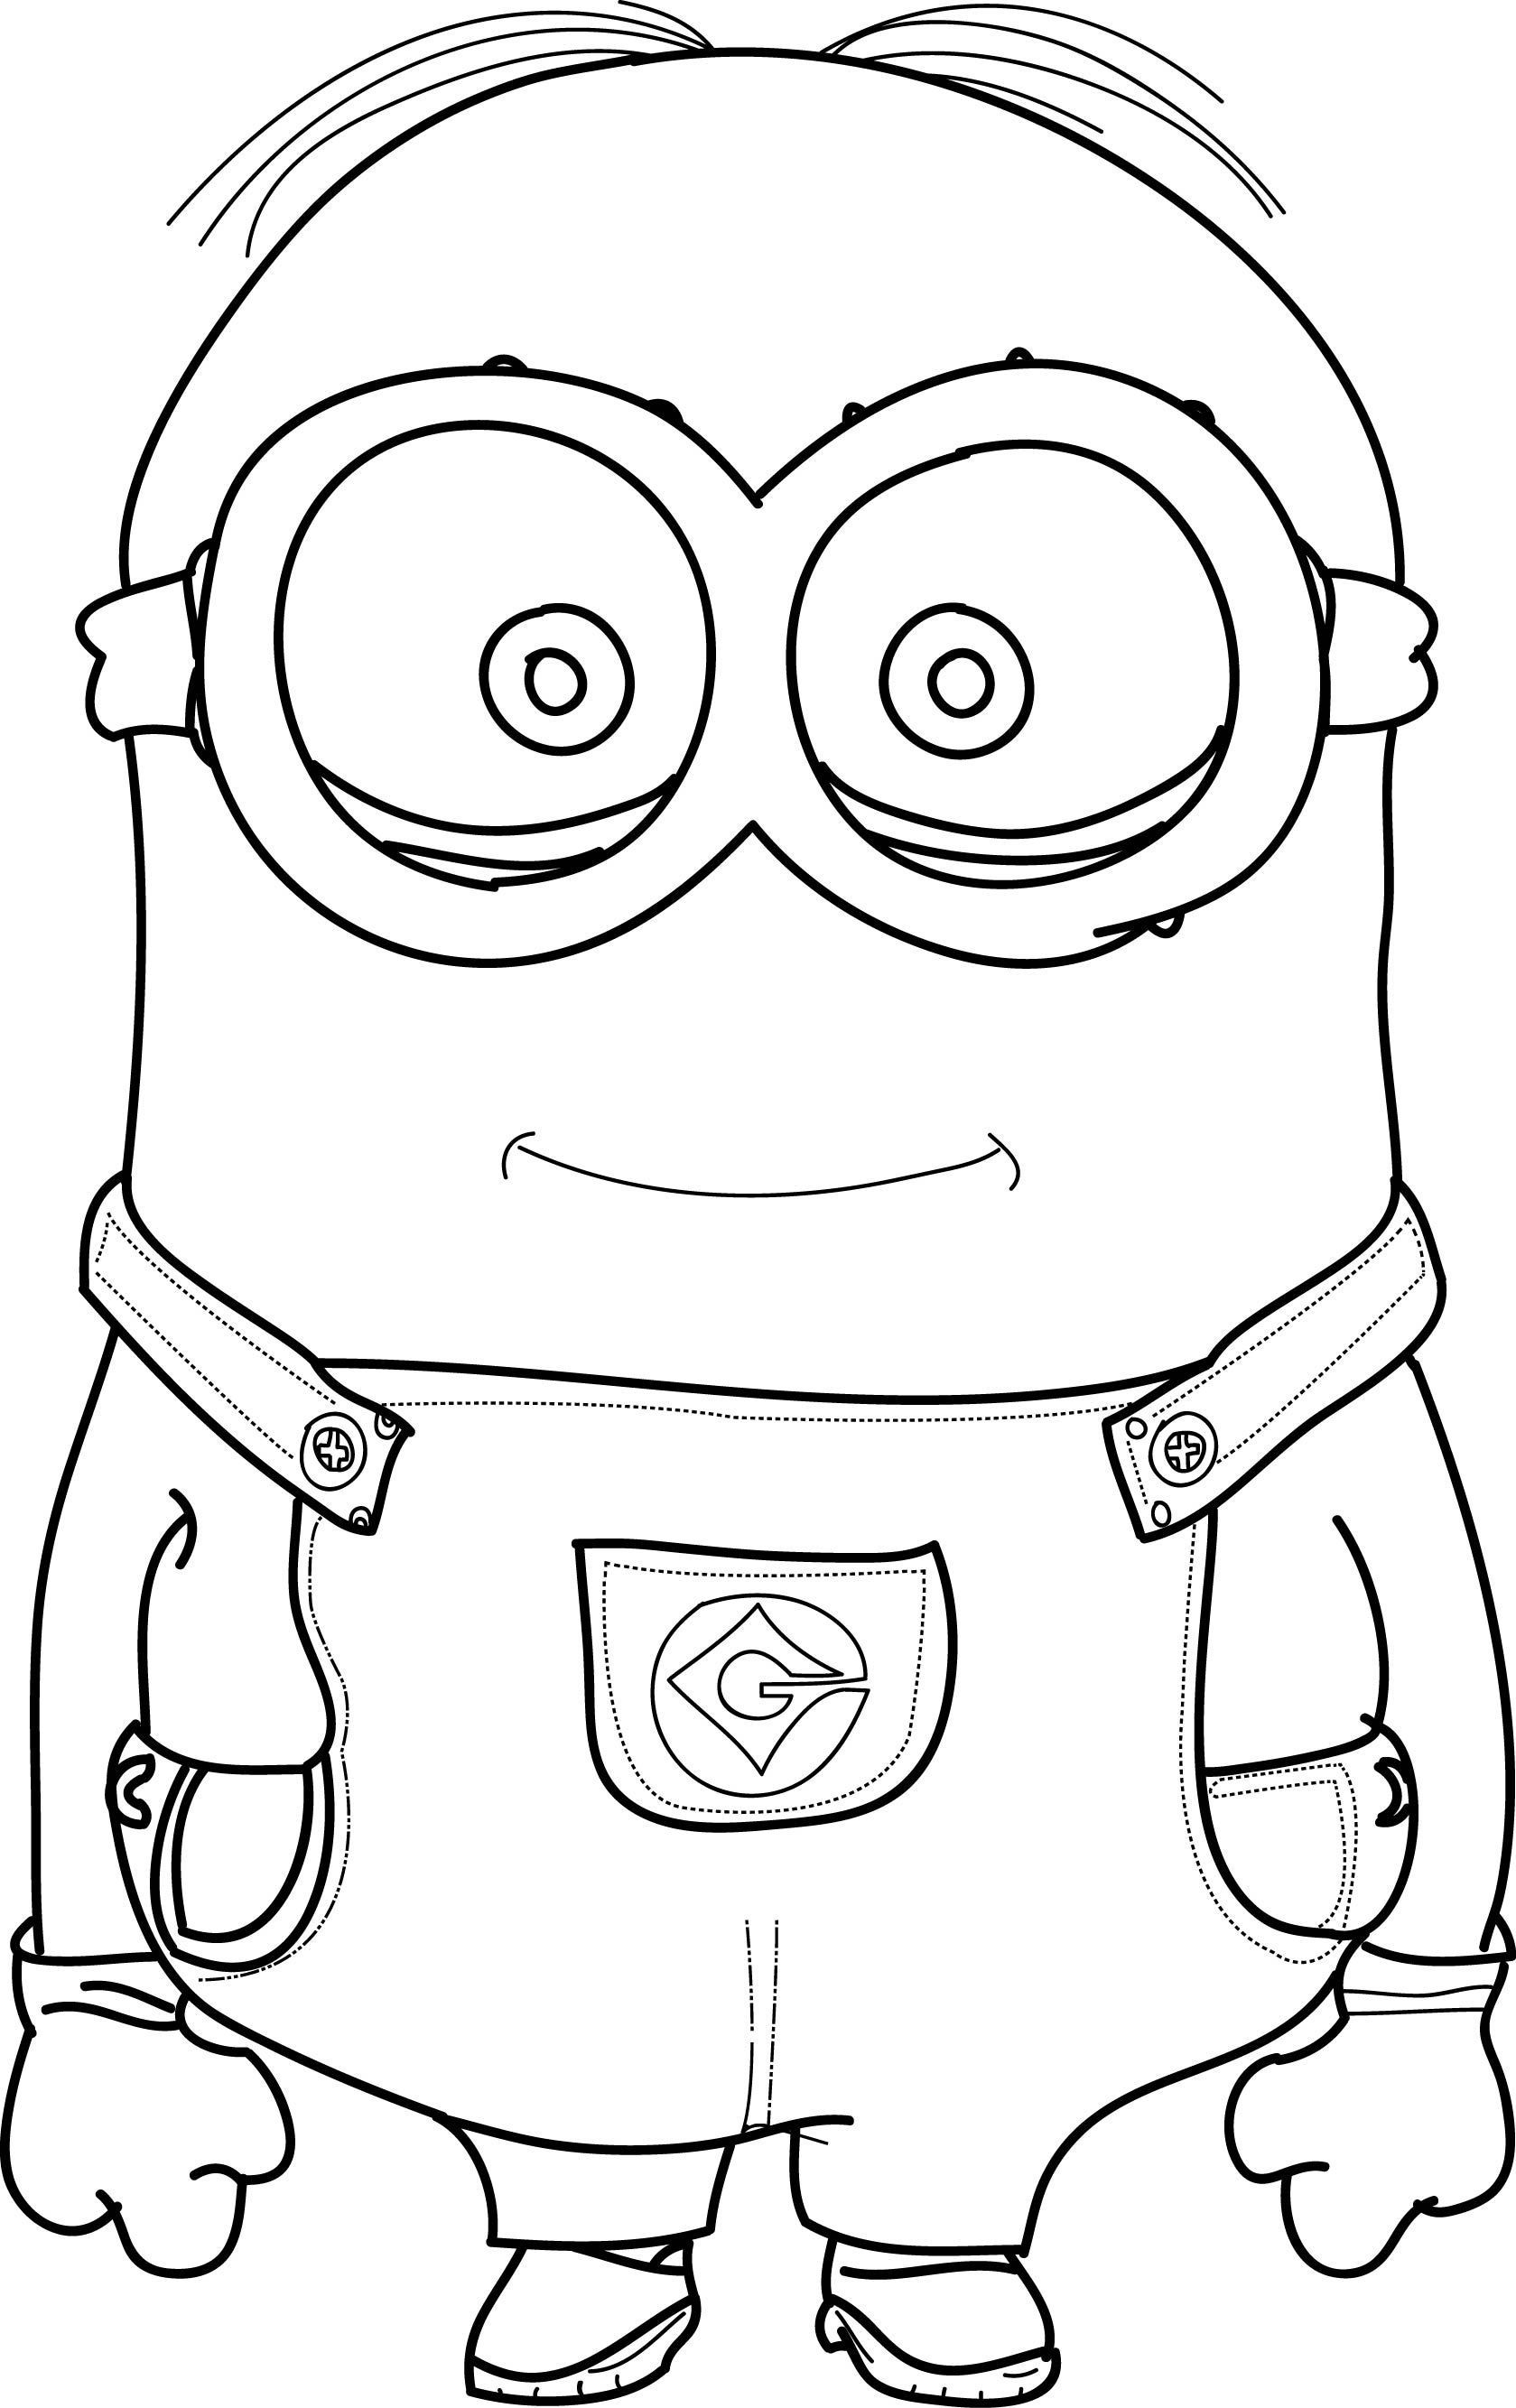 1679x2667 Coloring Pages Of Minions Bob New Kevin Bob Despicable Me